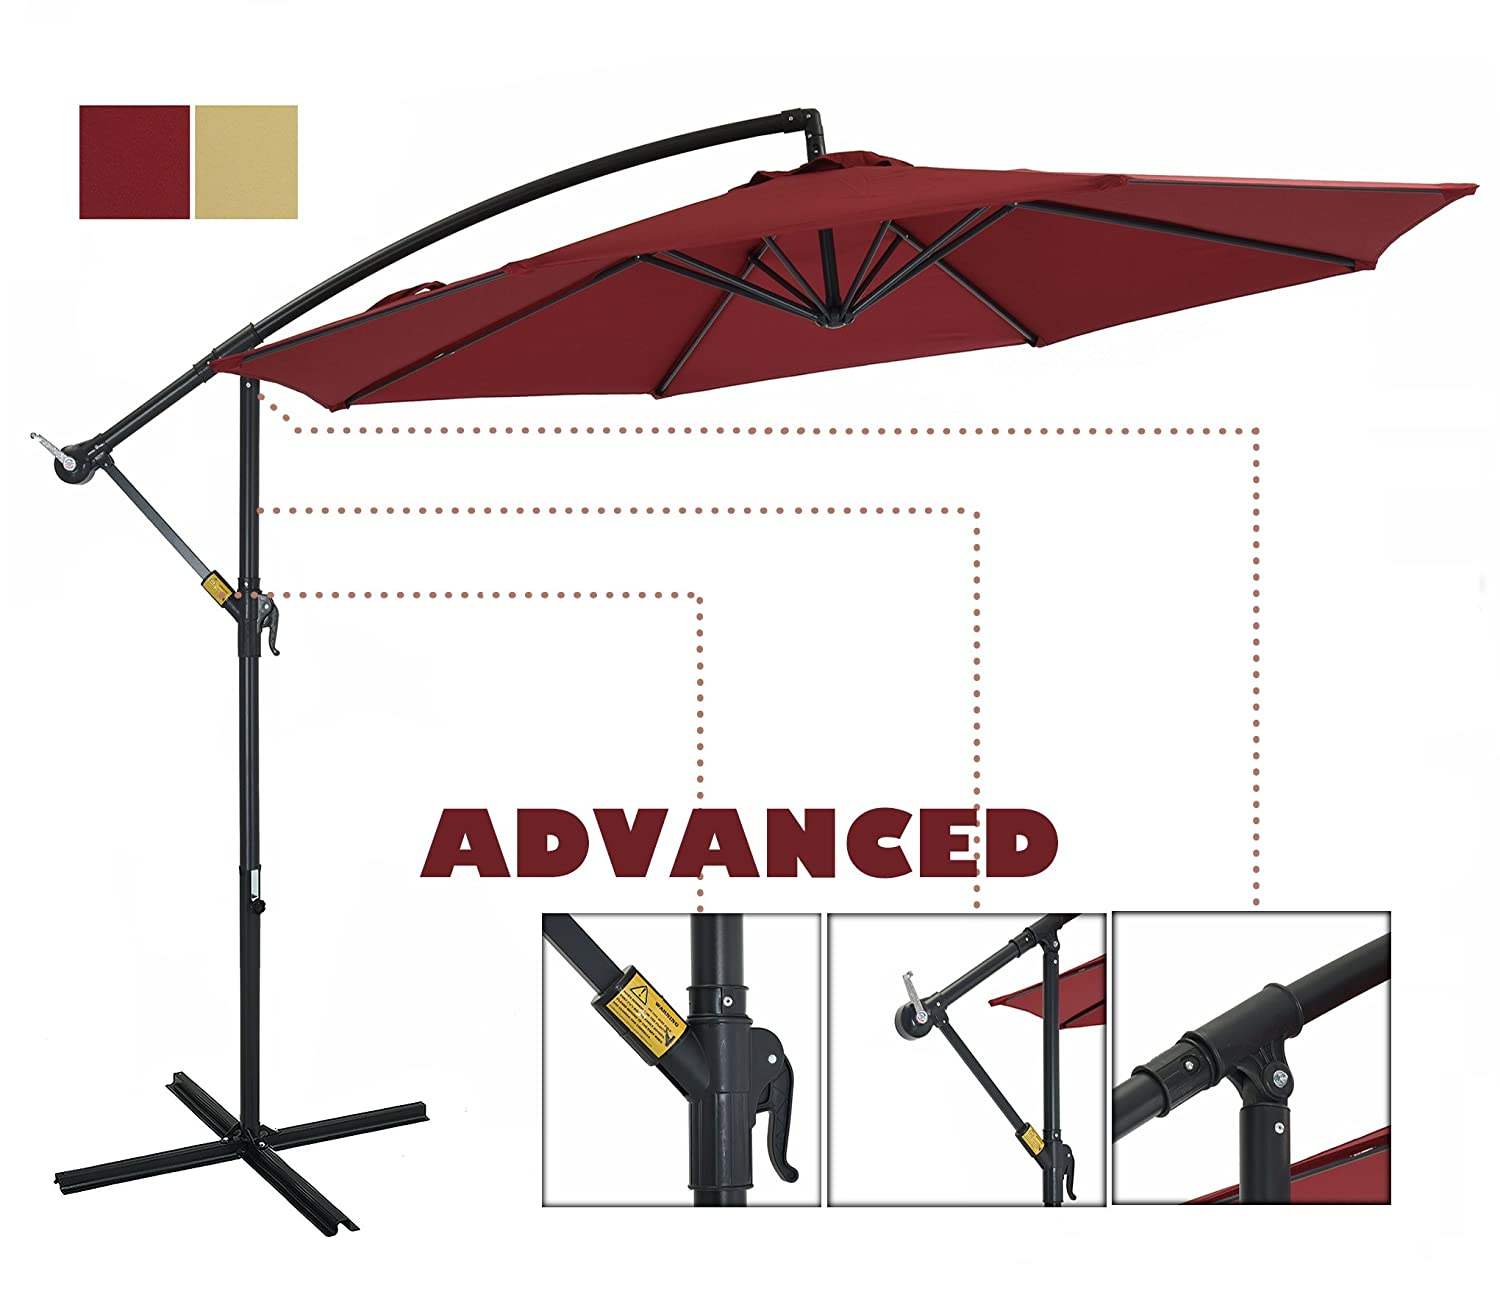 The Best Patio Umbrellas For Your Garden Or Backyard: Reviews & Buying Guide 5